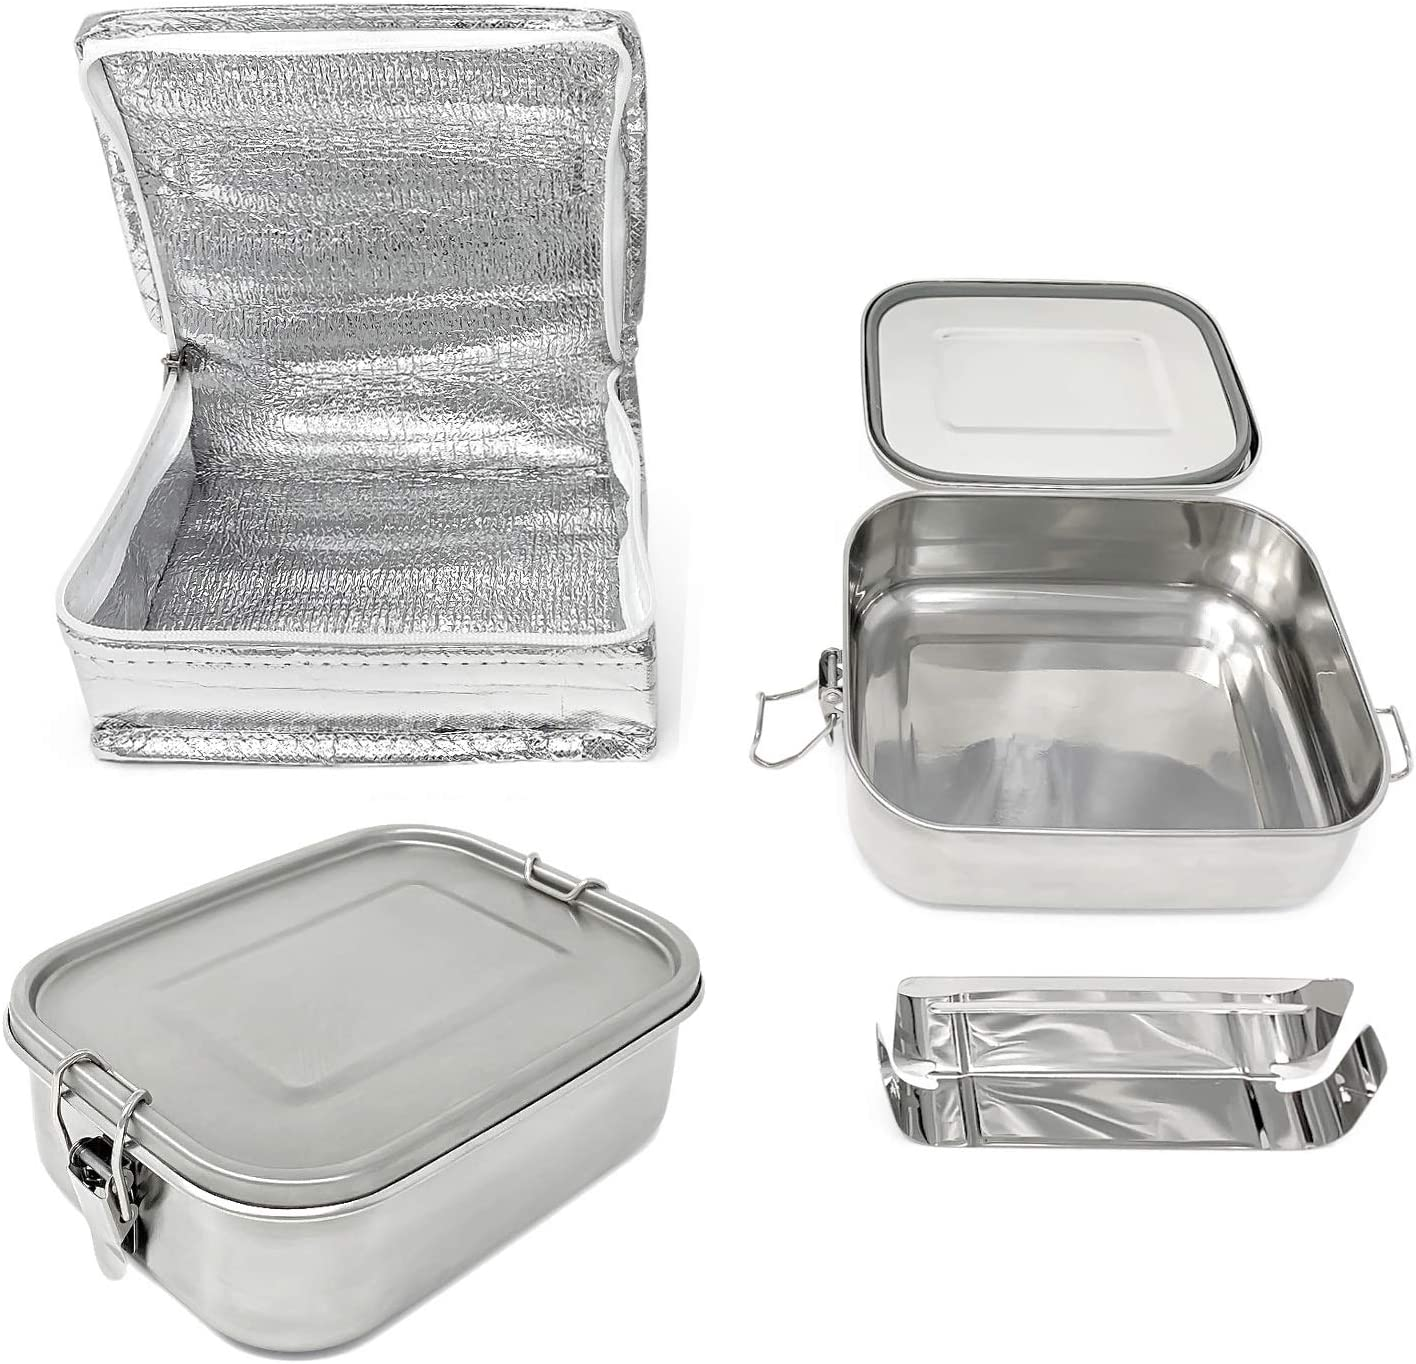 Leakproof Bento Lunch Box, Stainless Steel Lunch Seal Container, Metal Lunch Bag for Kids Adults, 1000ML, Dishwasher Safe, Food Safe, BPA Free